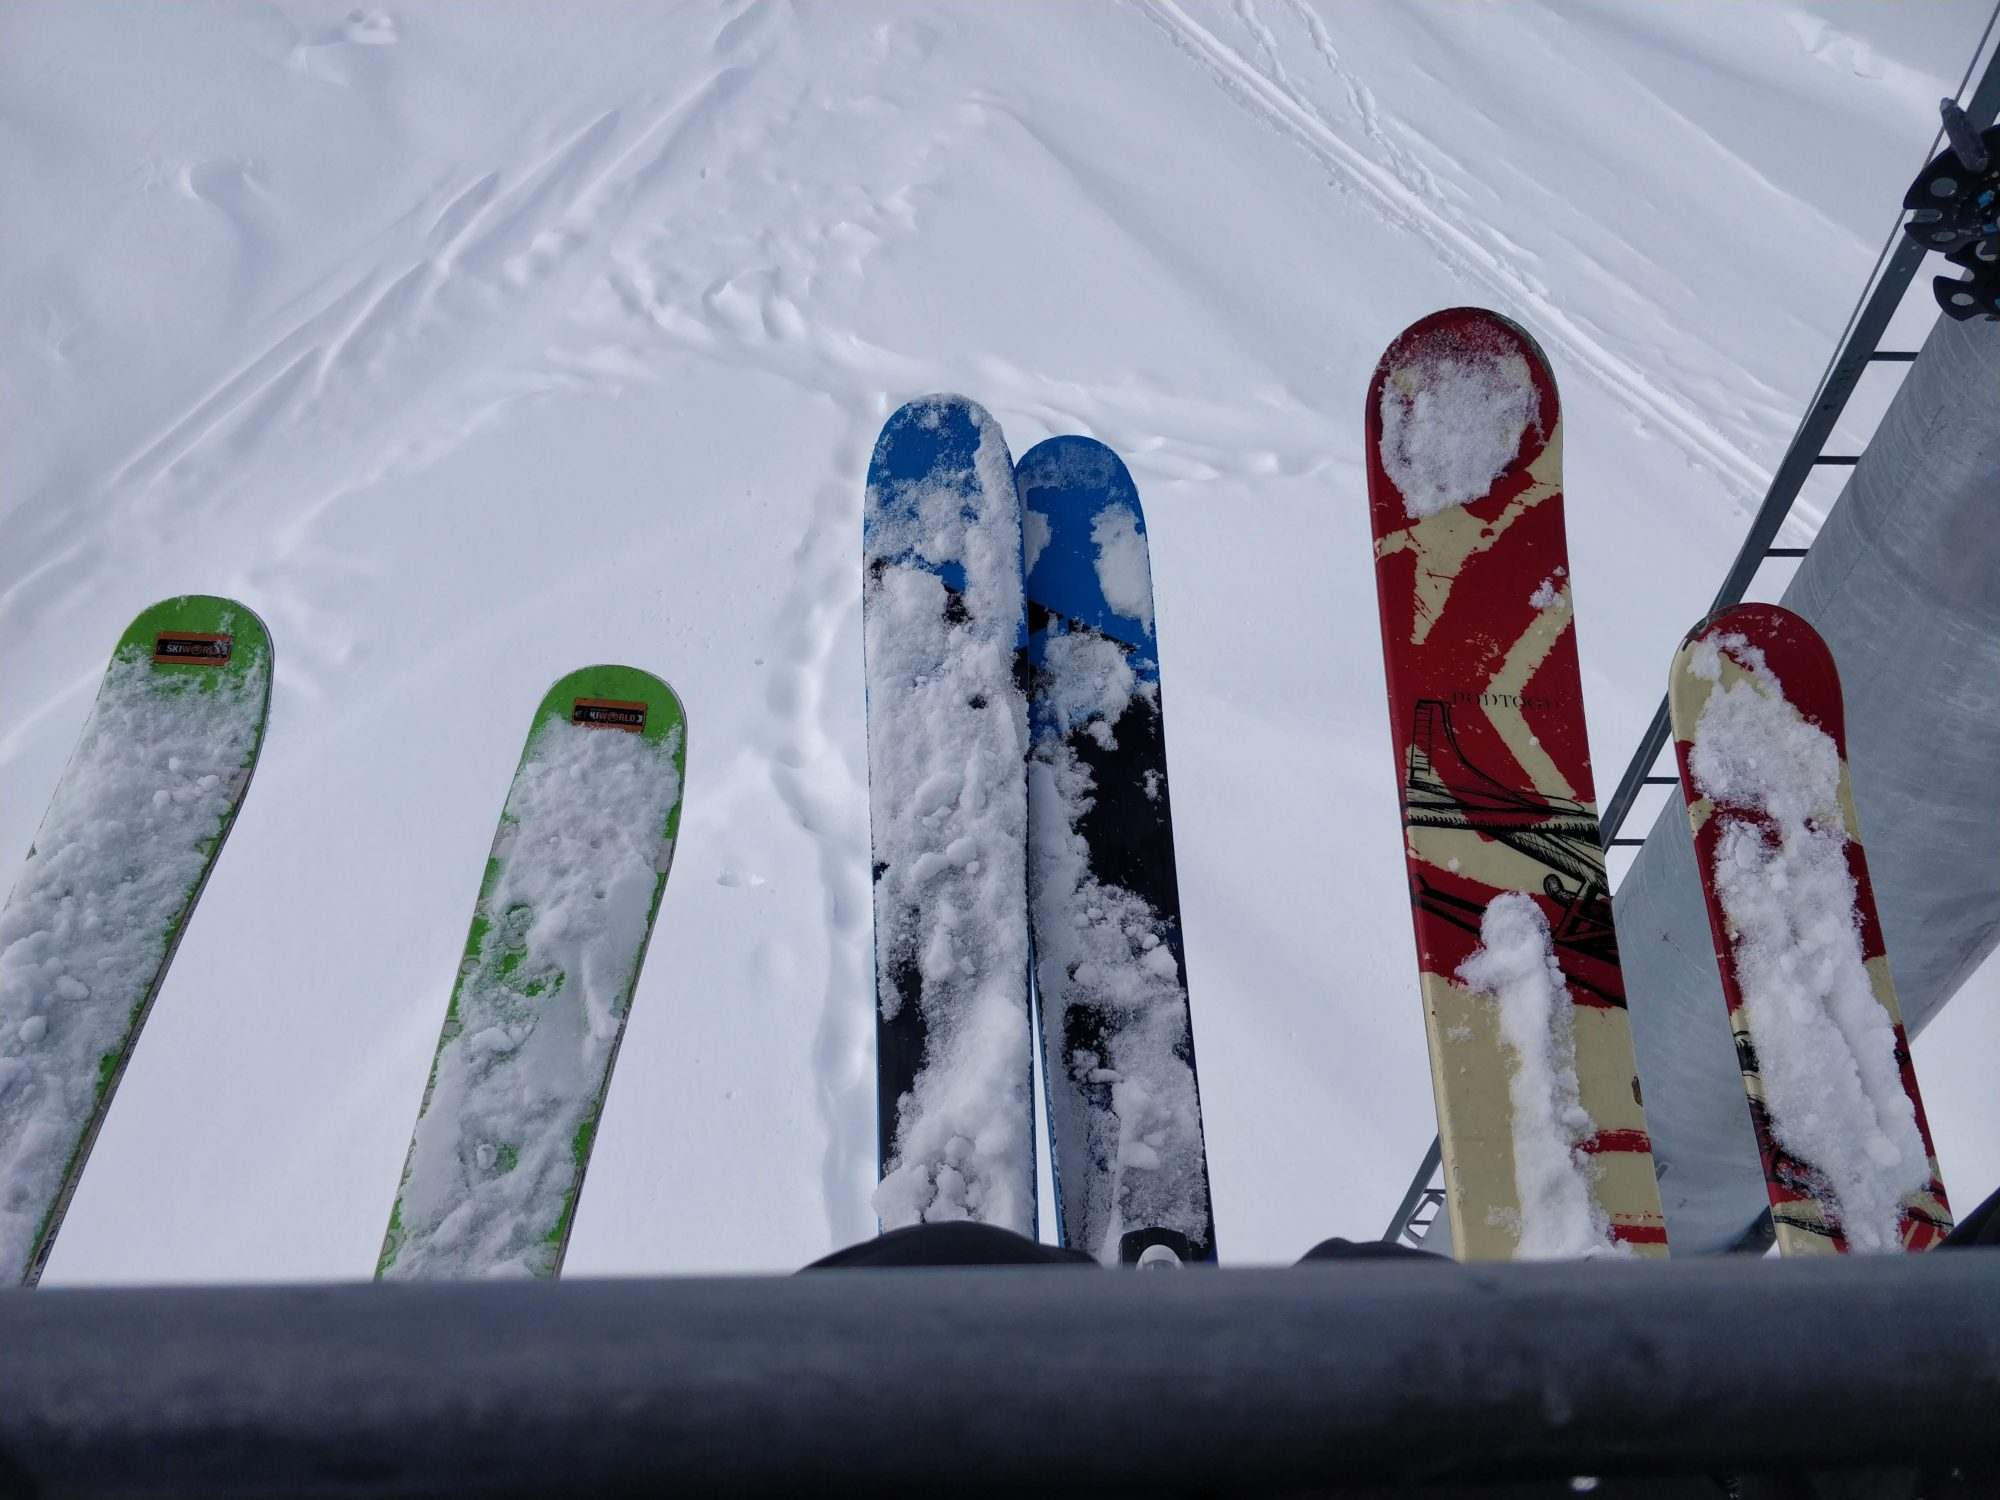 Should Kids be introduced to Skiing?